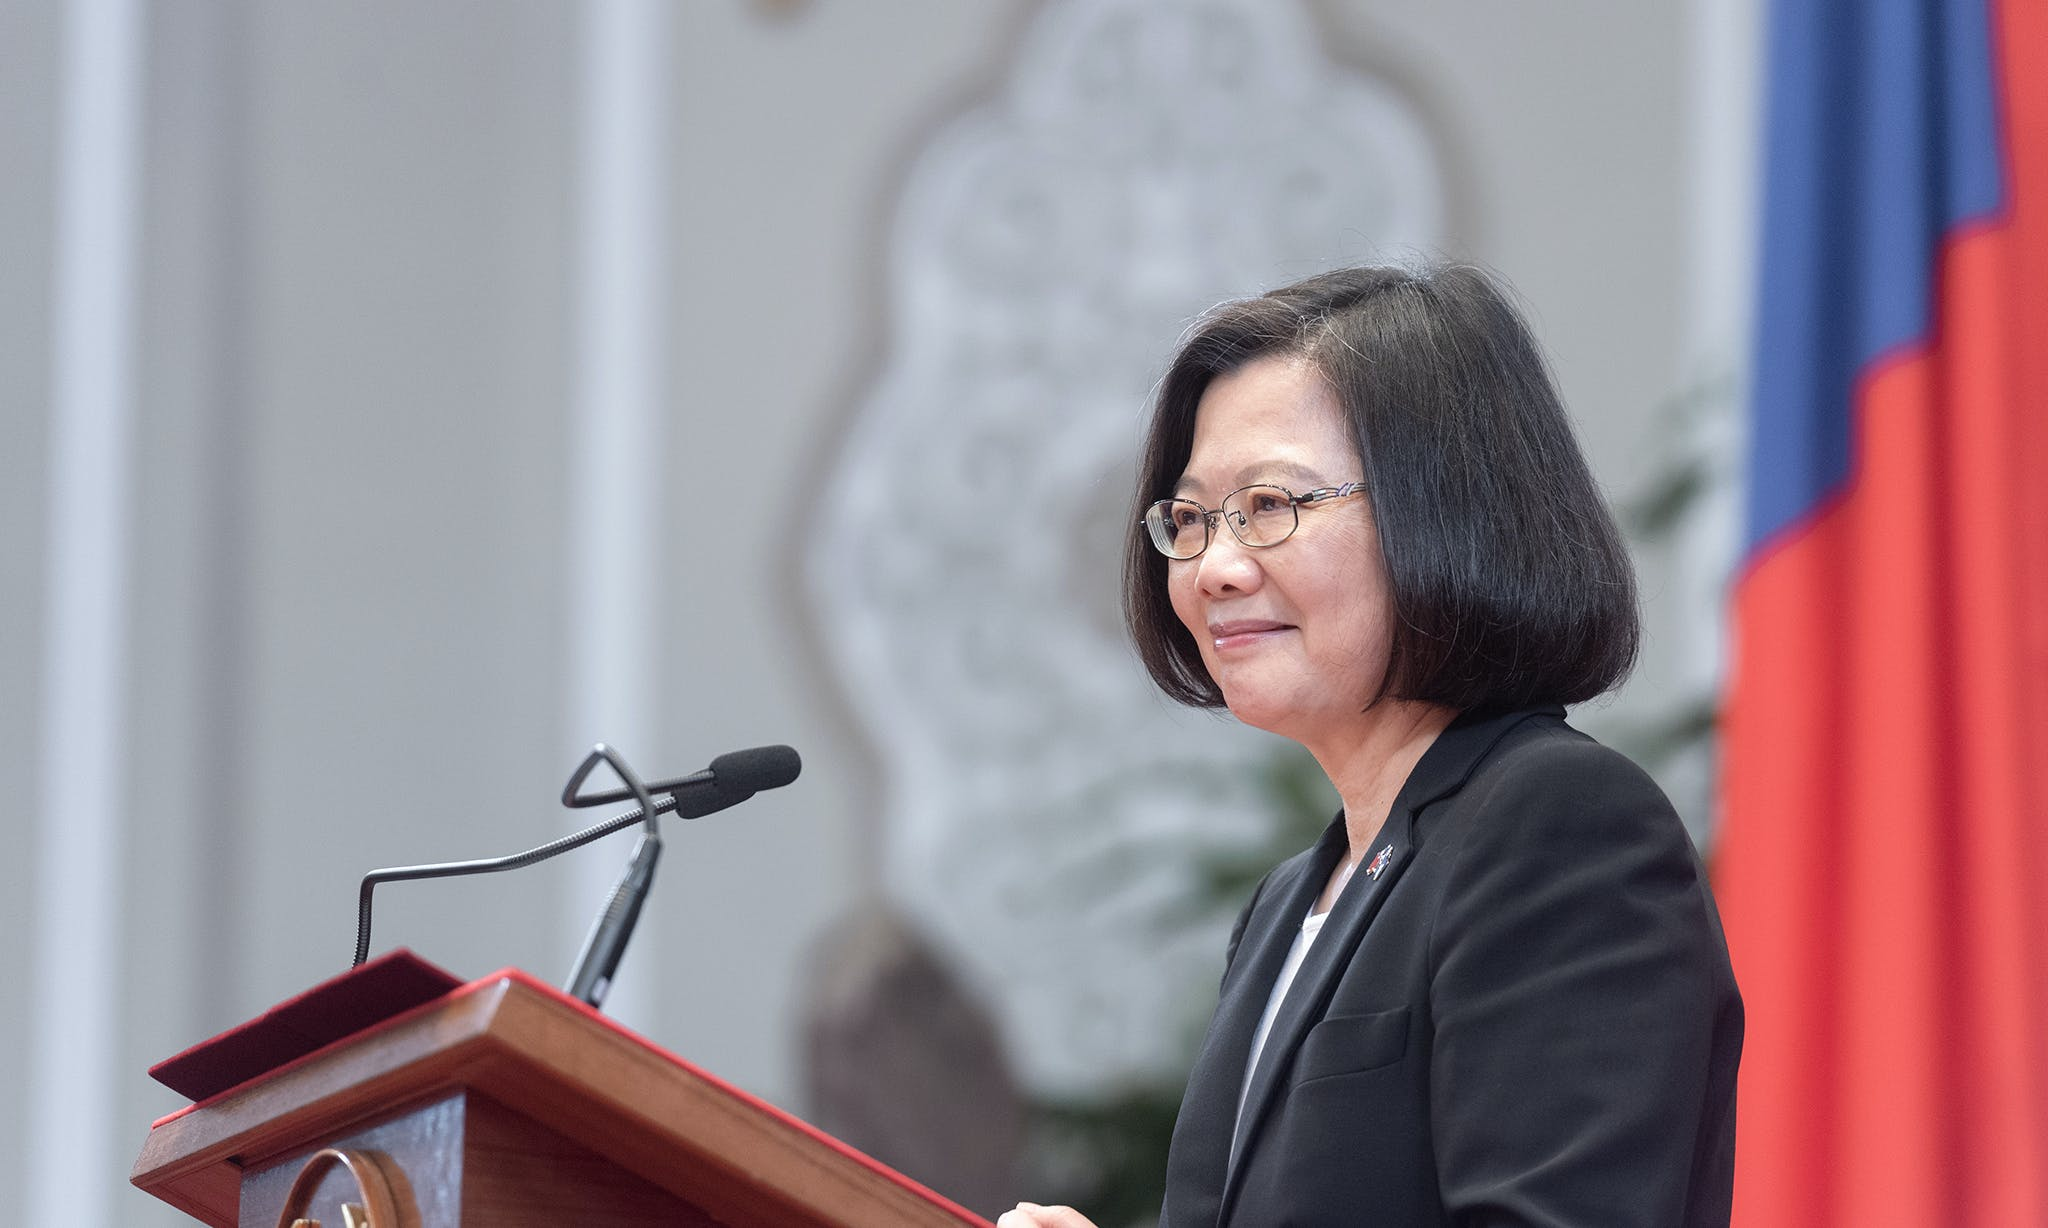 OPINION: Time for Tsai to Use Her Momentum to Renew Taiwanese Identity